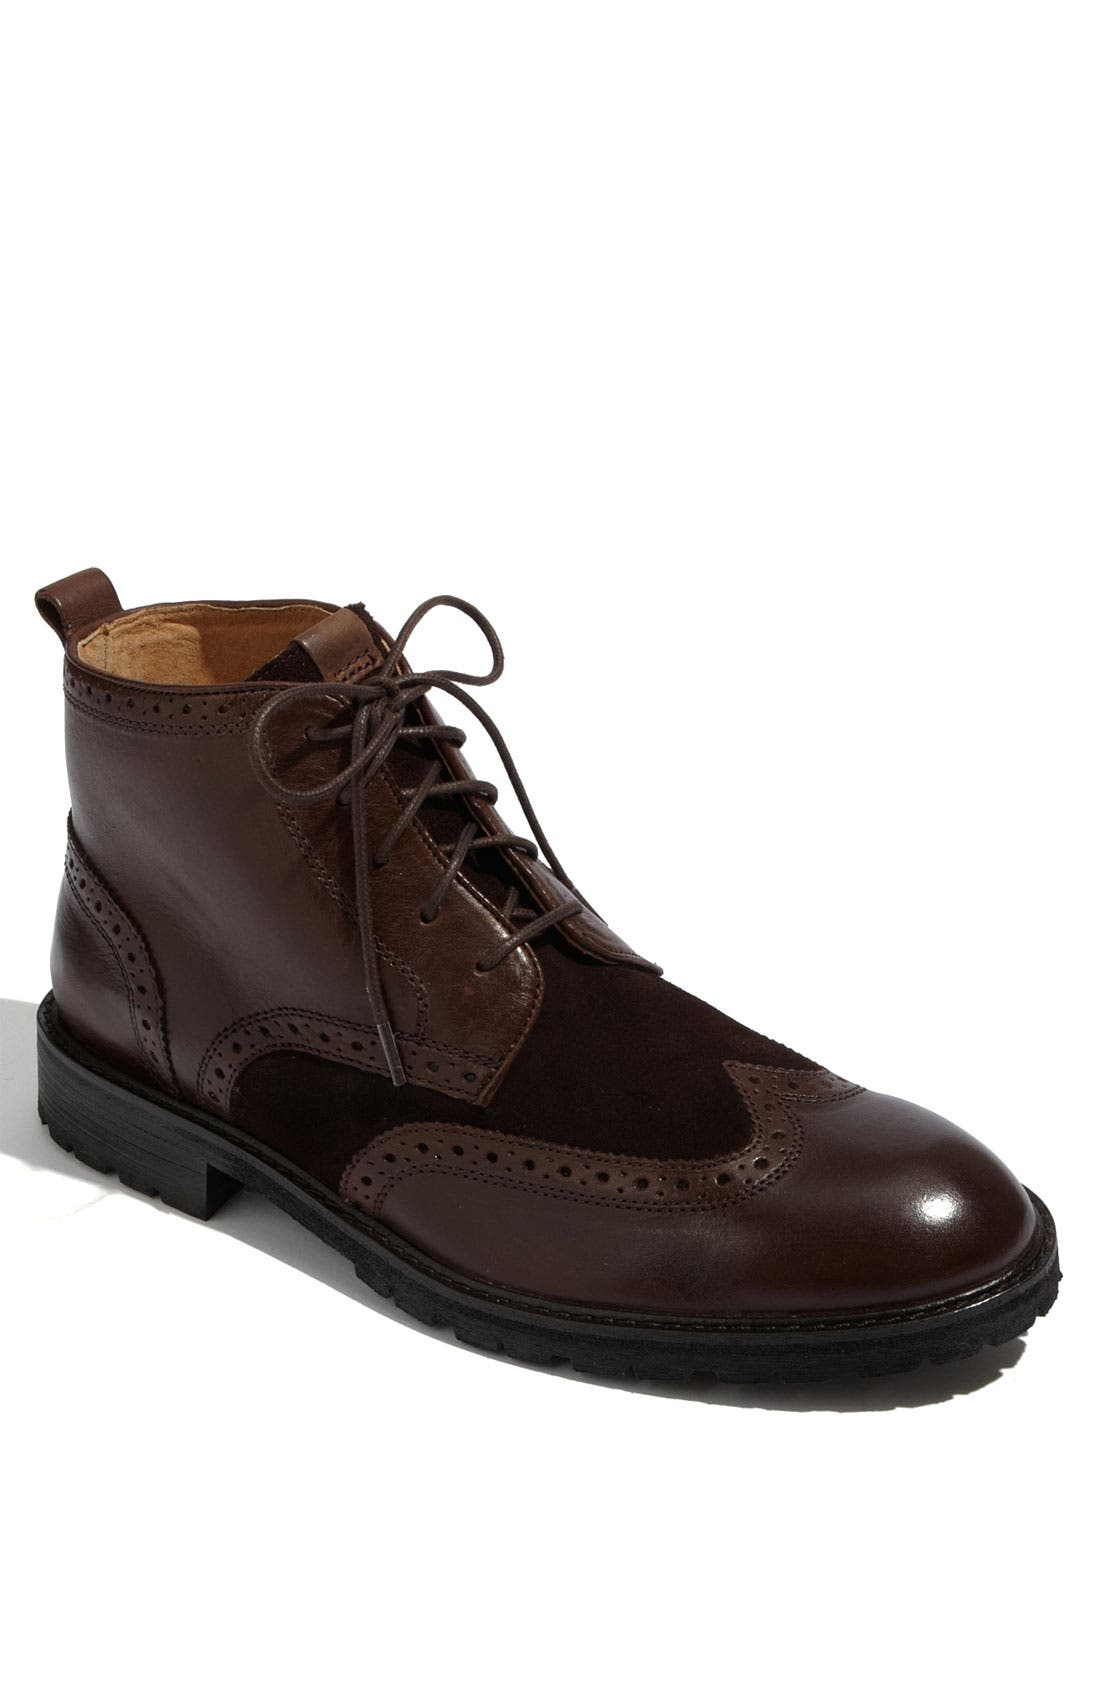 Main Image - Florsheim 'Gaffney' Wingtip Boot (Online Only)